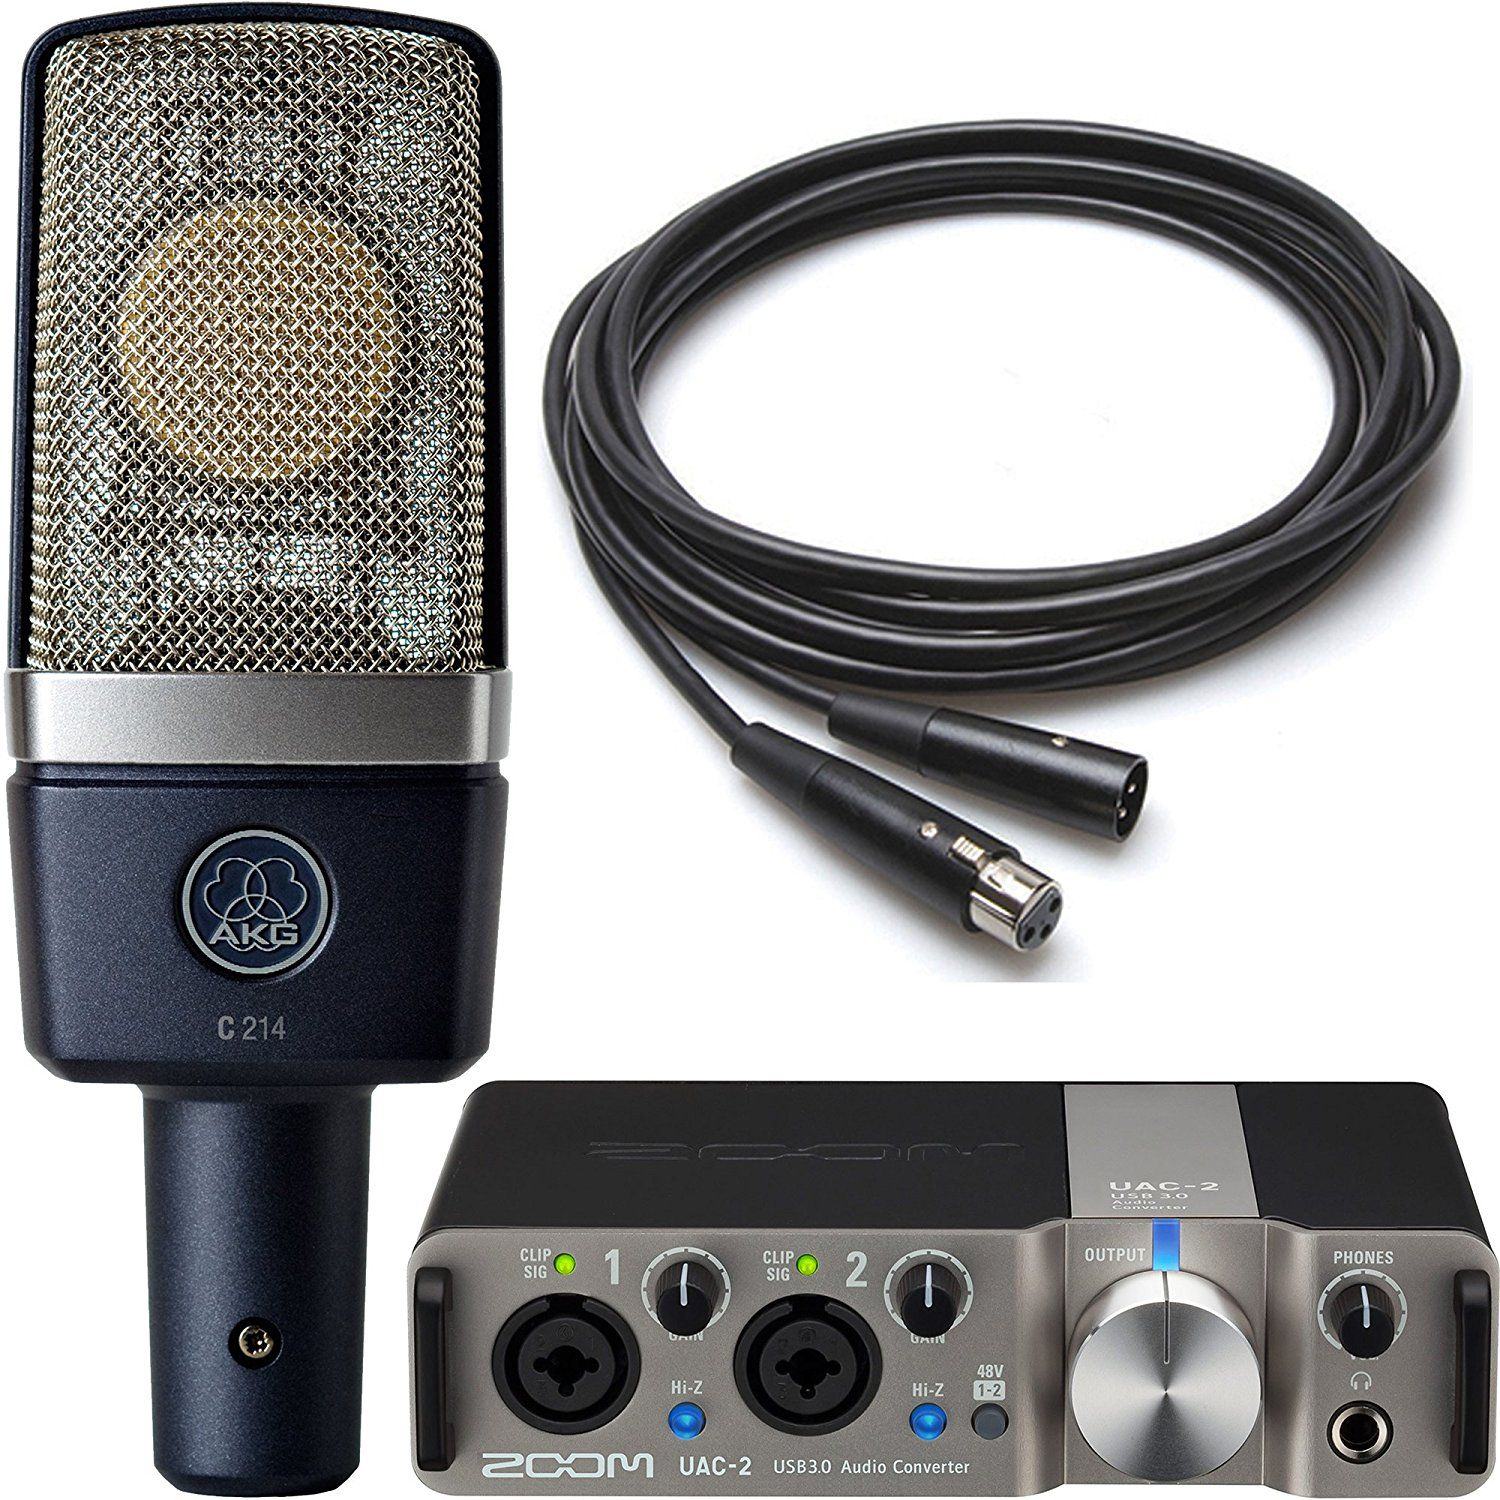 Akg Zoom Studio Recording Pack With Akg C214 Condenser Microphone And Zoom Uac 2 Usb 3 0 Audio Interface And 10 Microphone Cable Microphone Akg Audio